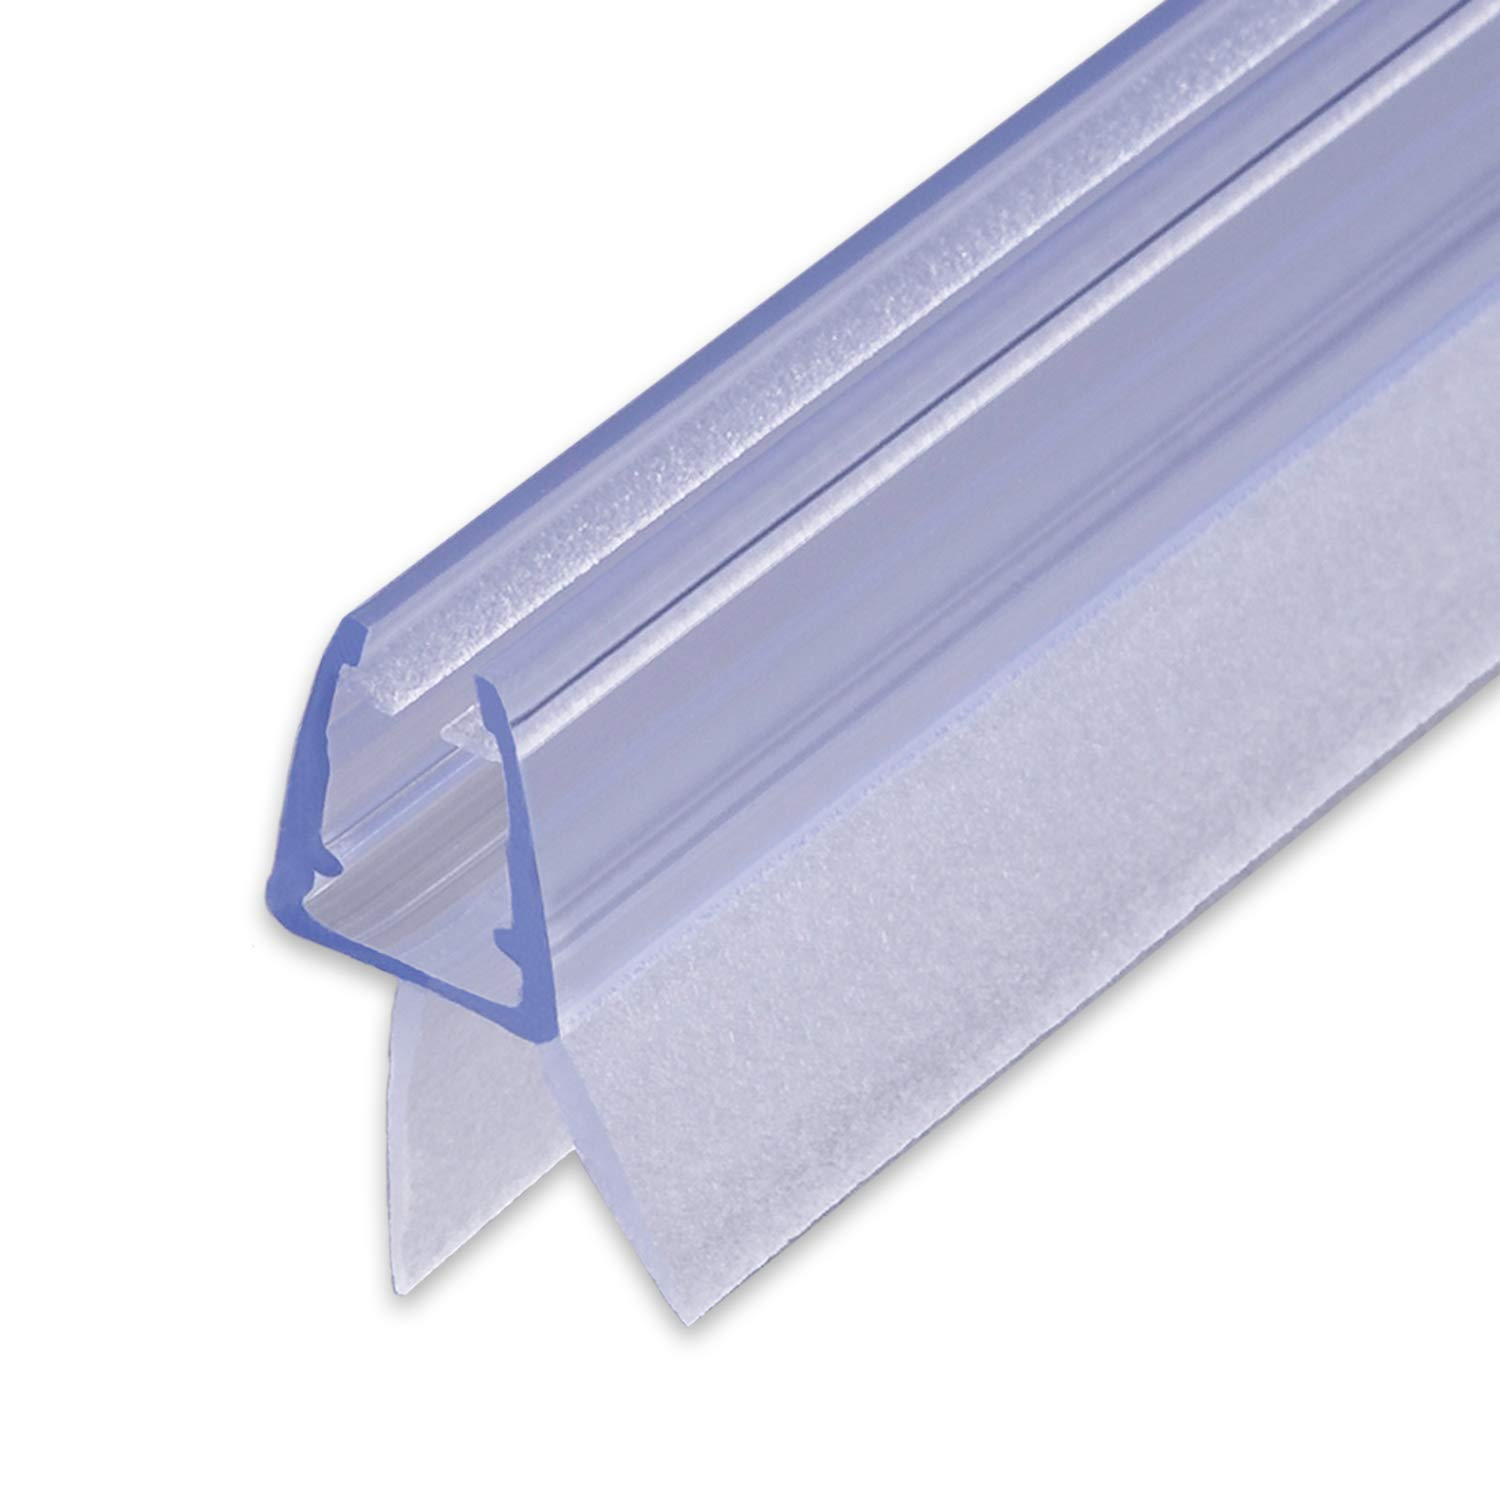 100cm Replacement Seal with Sealing Piping for 6/7/8mm Glass Thickness, Water-Repellent Shower Seal, Splash Guard, Shower Cubicle #1001 Sealis